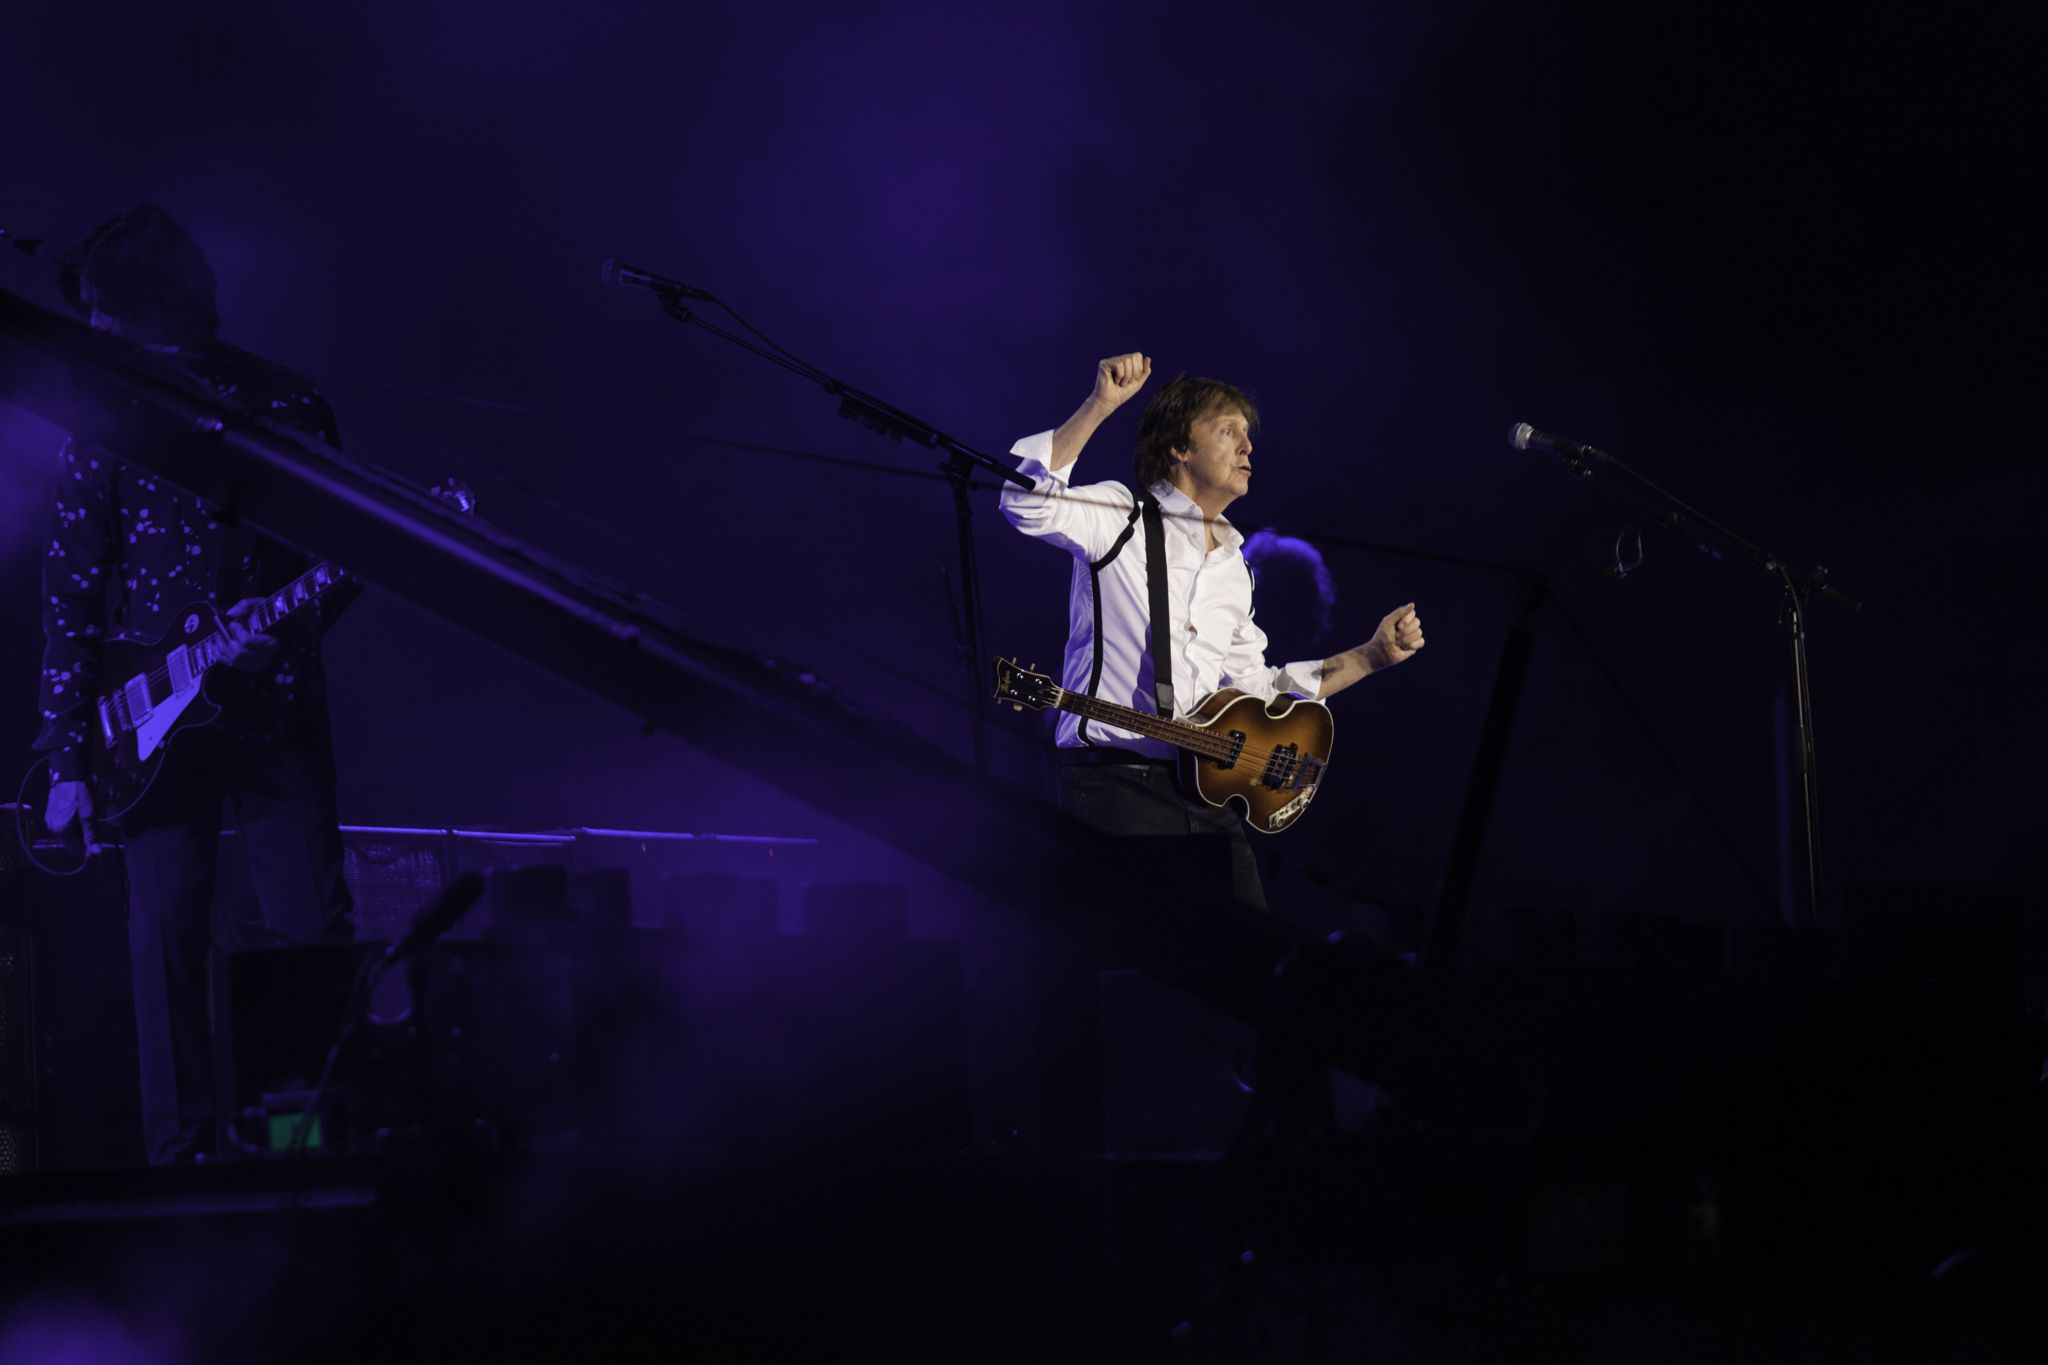 Paul McCartney performing live on stage.